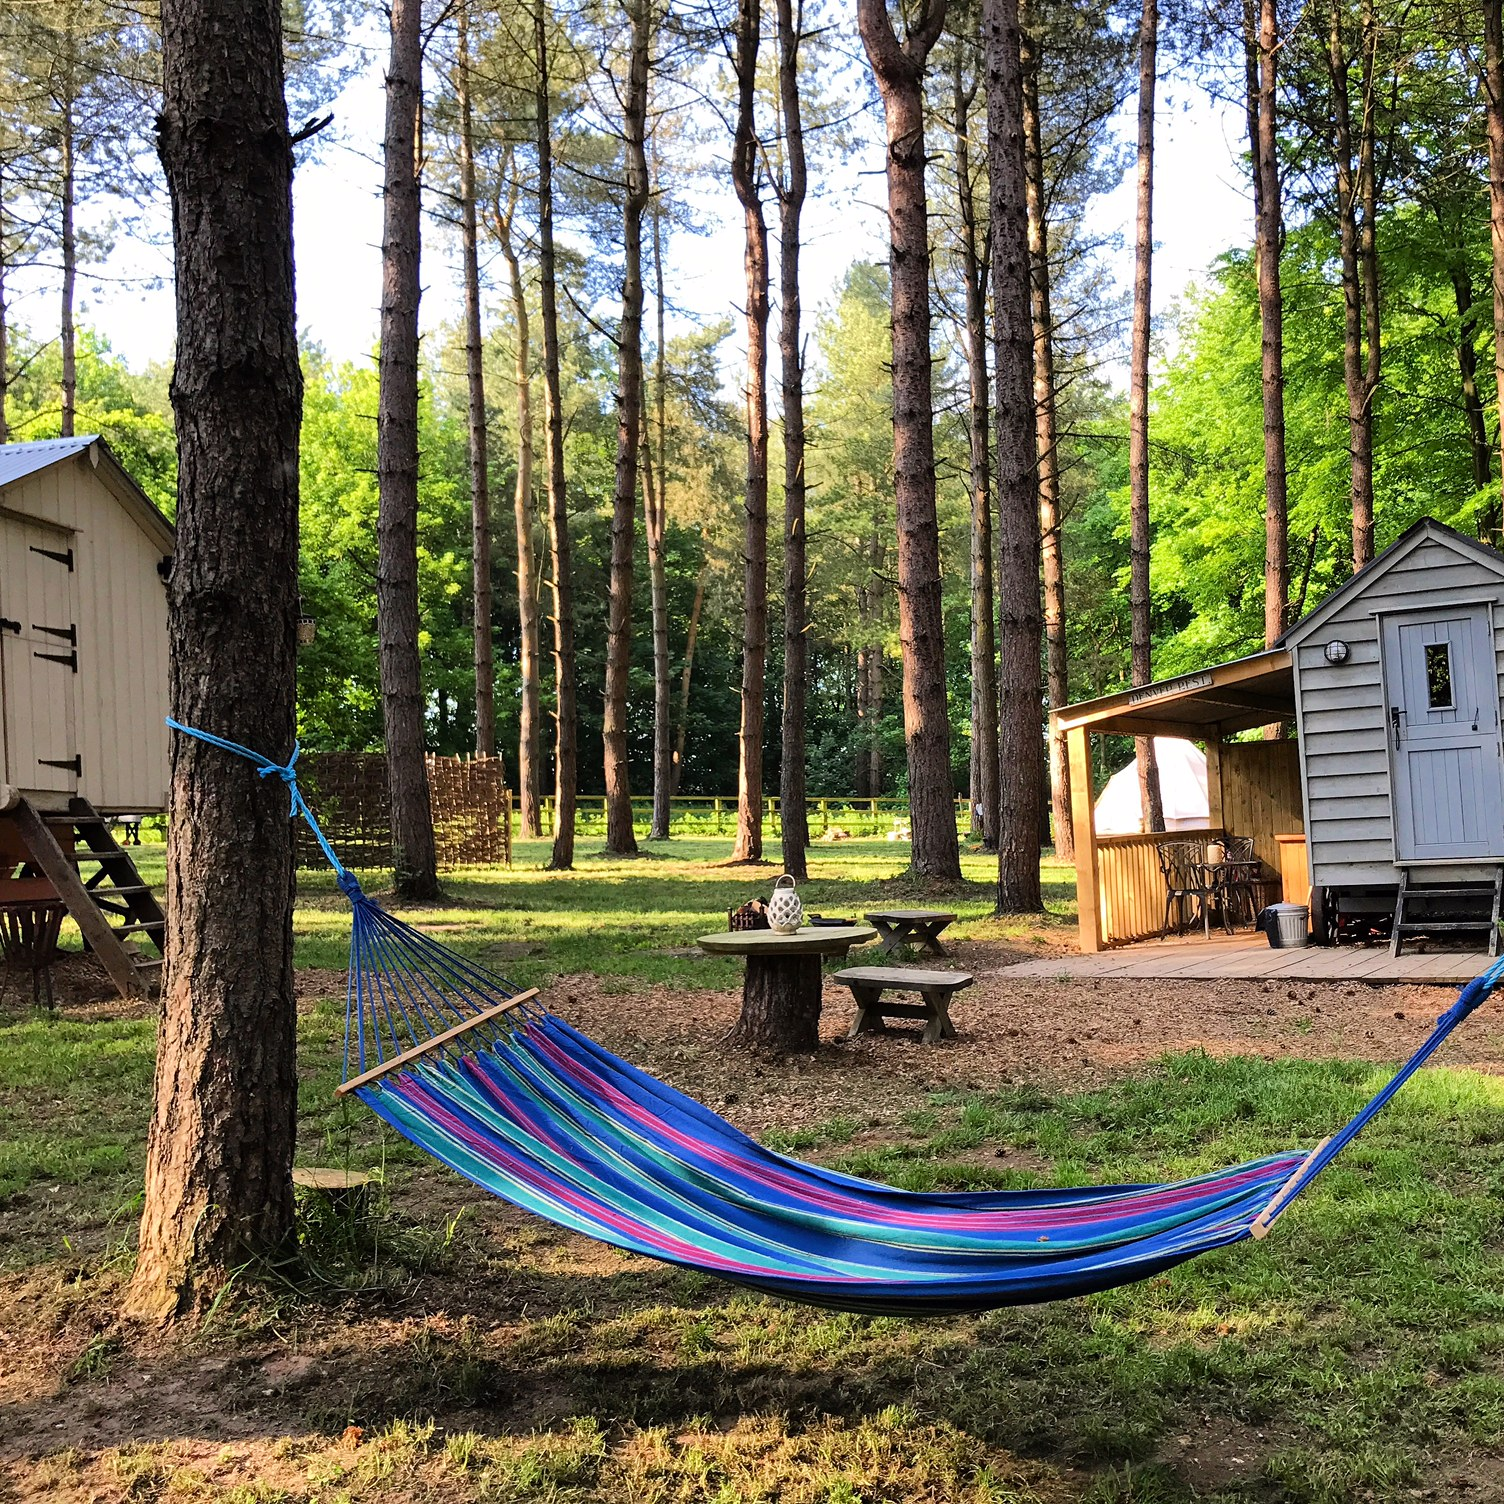 Denver Rest sits with Tawny Hut and they come as a pair. Perfect for 2 couples or if you have slightly older children who want their own space but still close enough to feel safe.